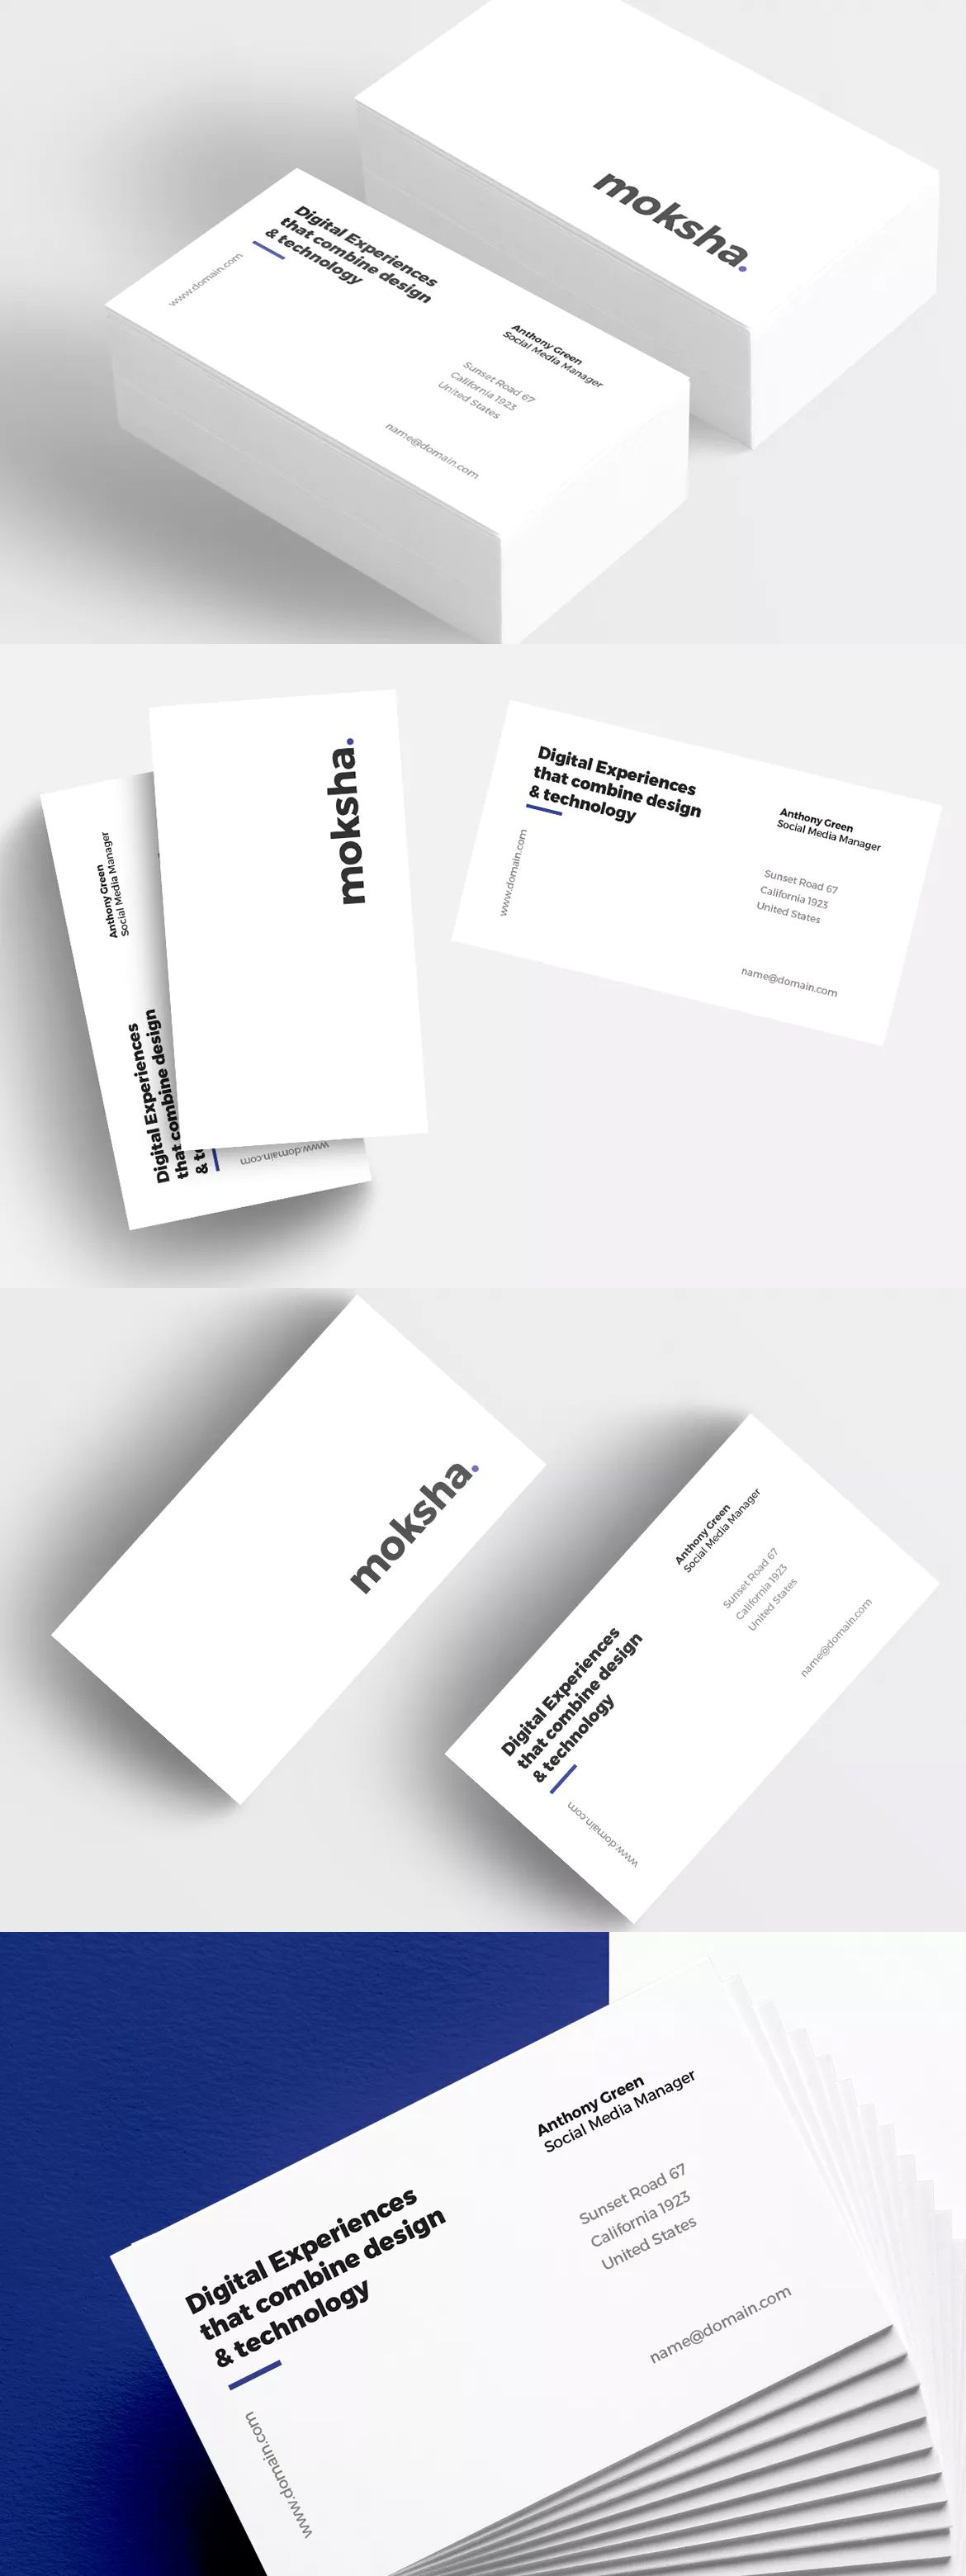 Minimal corporate business card template psd packing pinterest minimal corporate business card by micromove on envato elements reheart Gallery